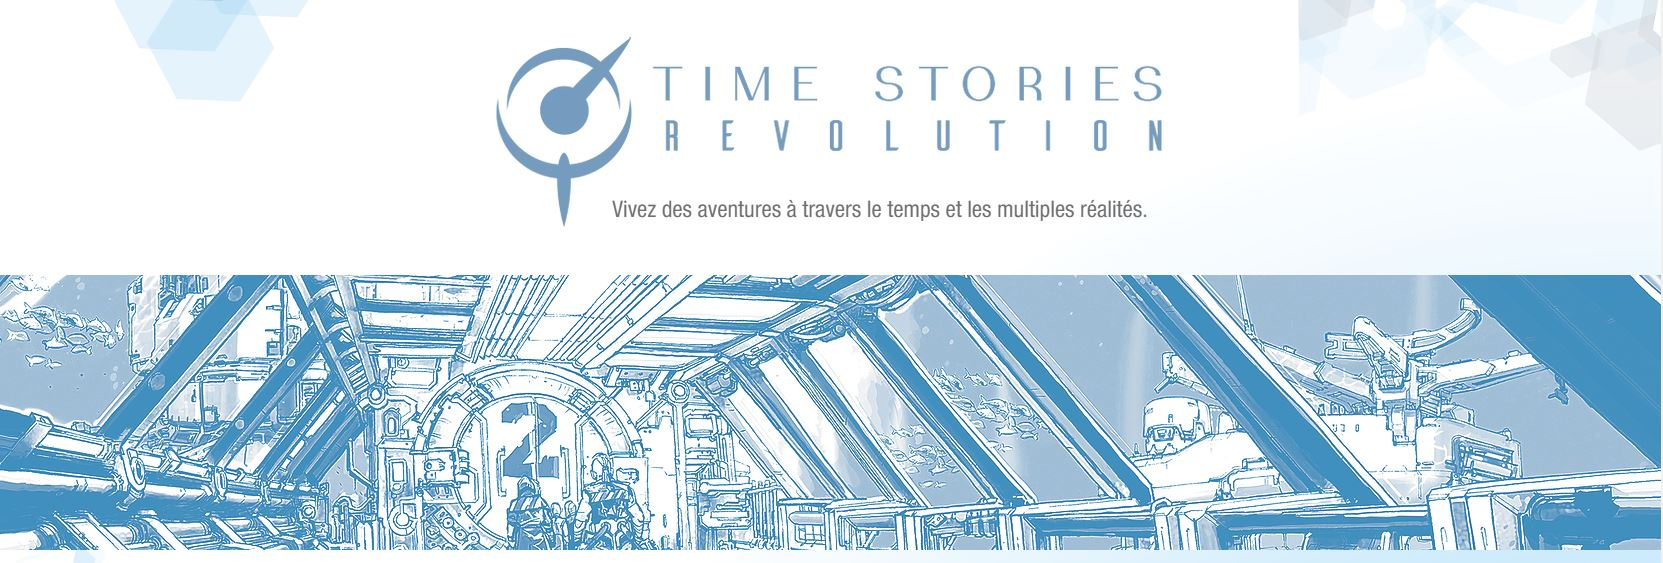 Space Cowboys - Time Stories Revolution